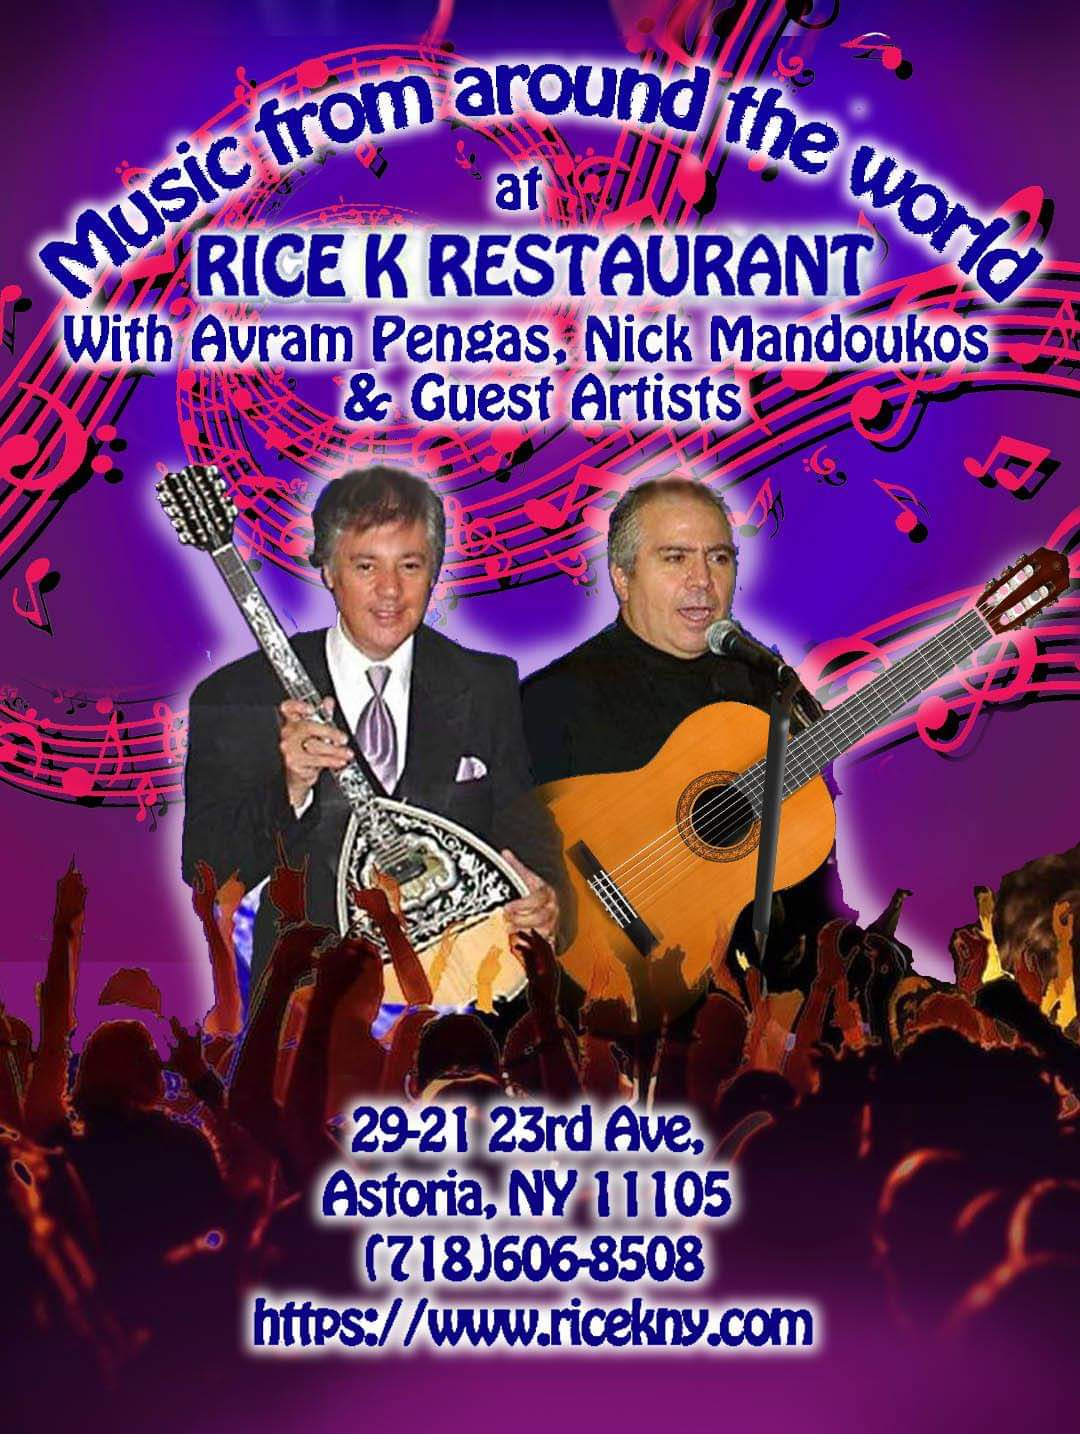 World music - We love good music at Rice K. Rice K has had the opportunity to work with many professional artists in the past years. Recent Thursdays once every two week we have Avram, Nick and guest artists perform music from all around the world, including Italian, Spanish, Greek and etc. A night of music and dance.Reserve your table today. Call 718 606 8508 for more information.